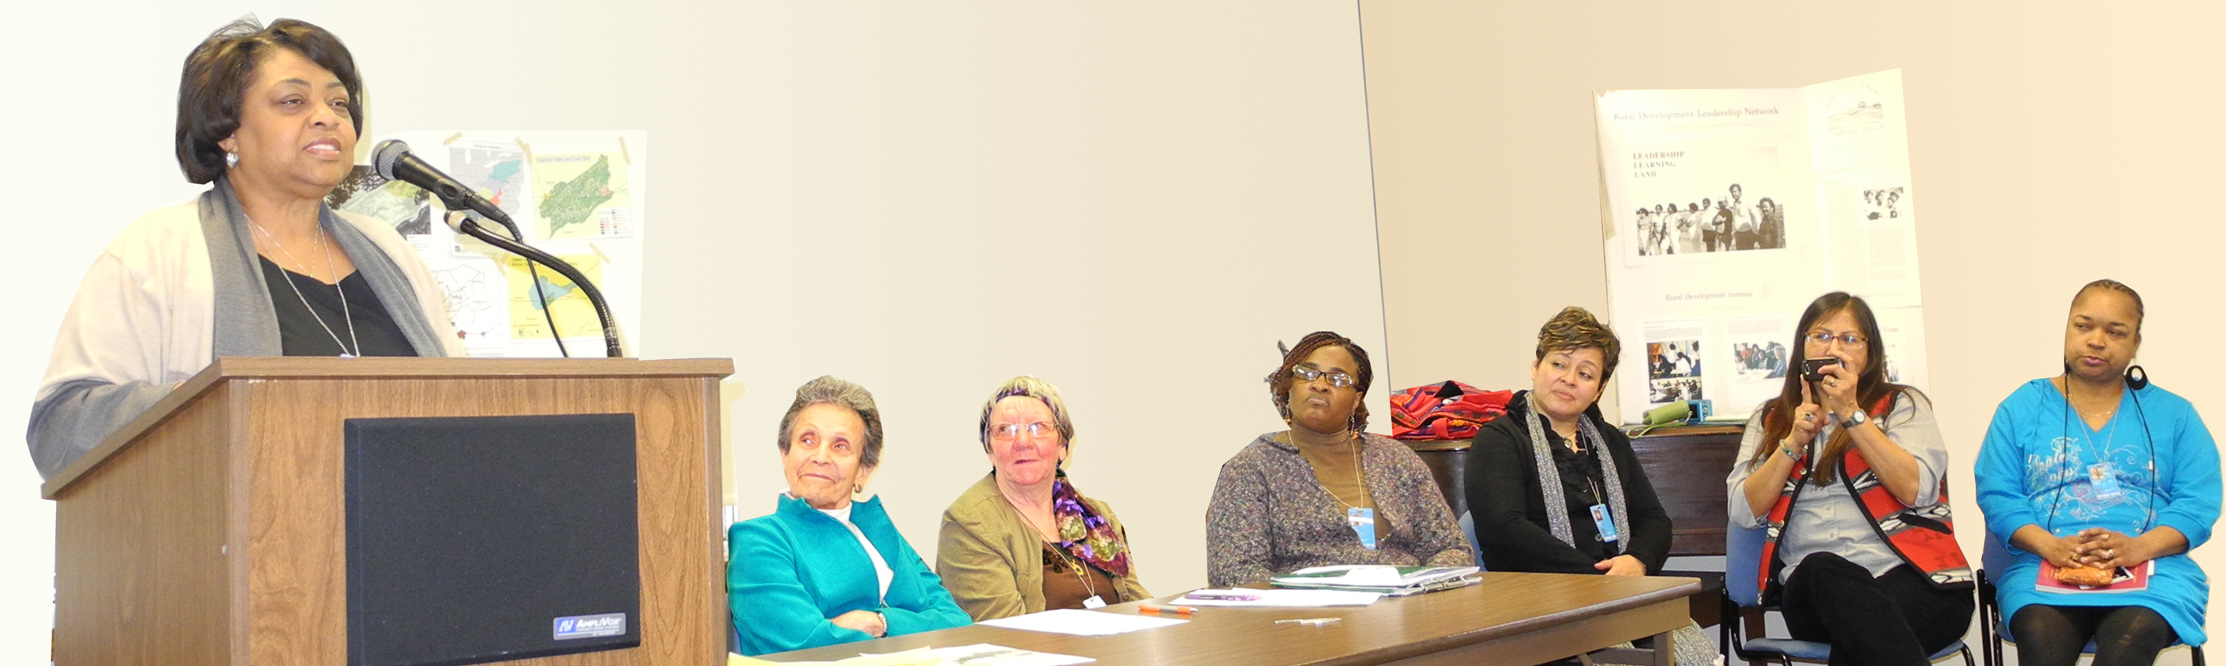 Shirley Sherrod Speaks at the RDLN Panel